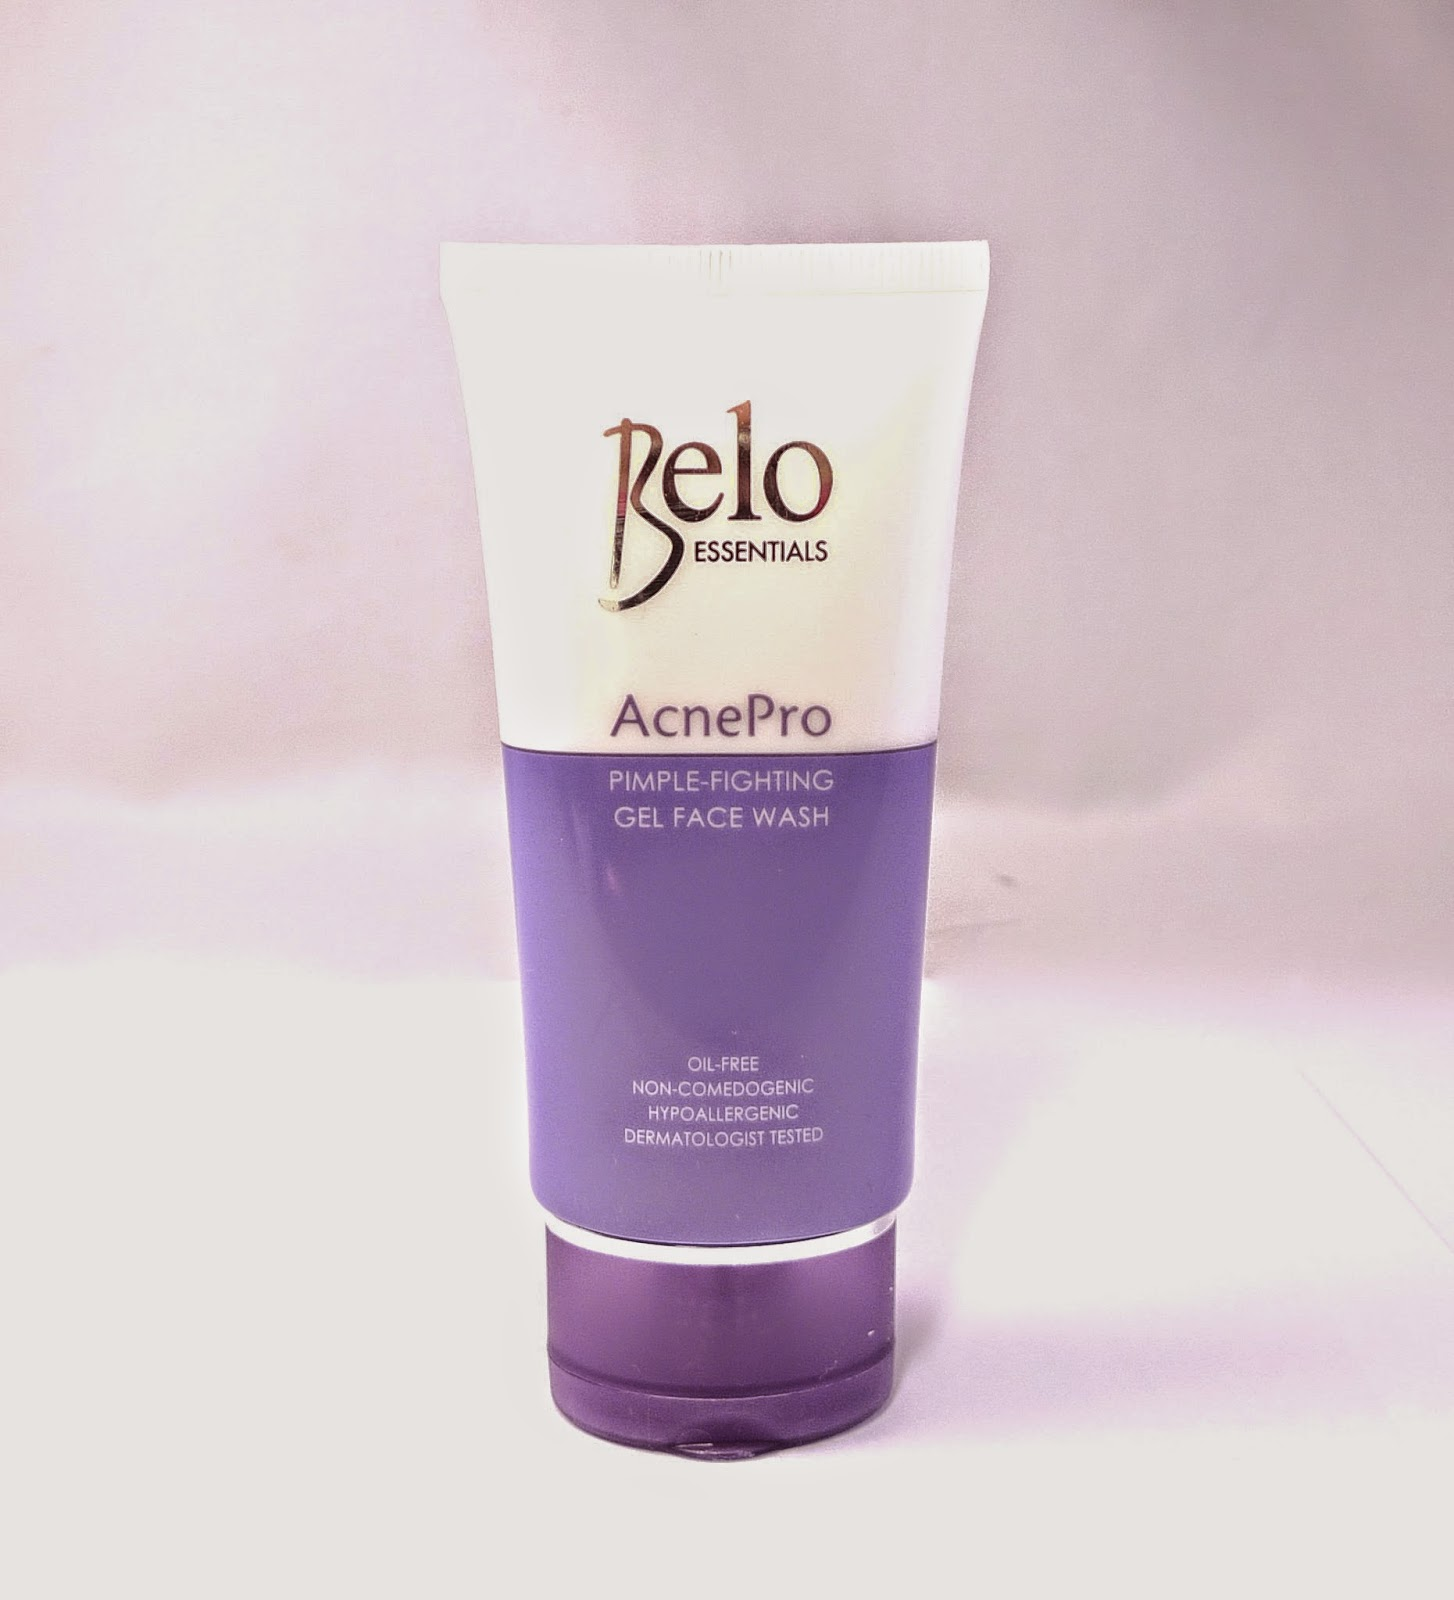 Belo Essentials AcnePro Skin Care Review | The Beauty Junkee